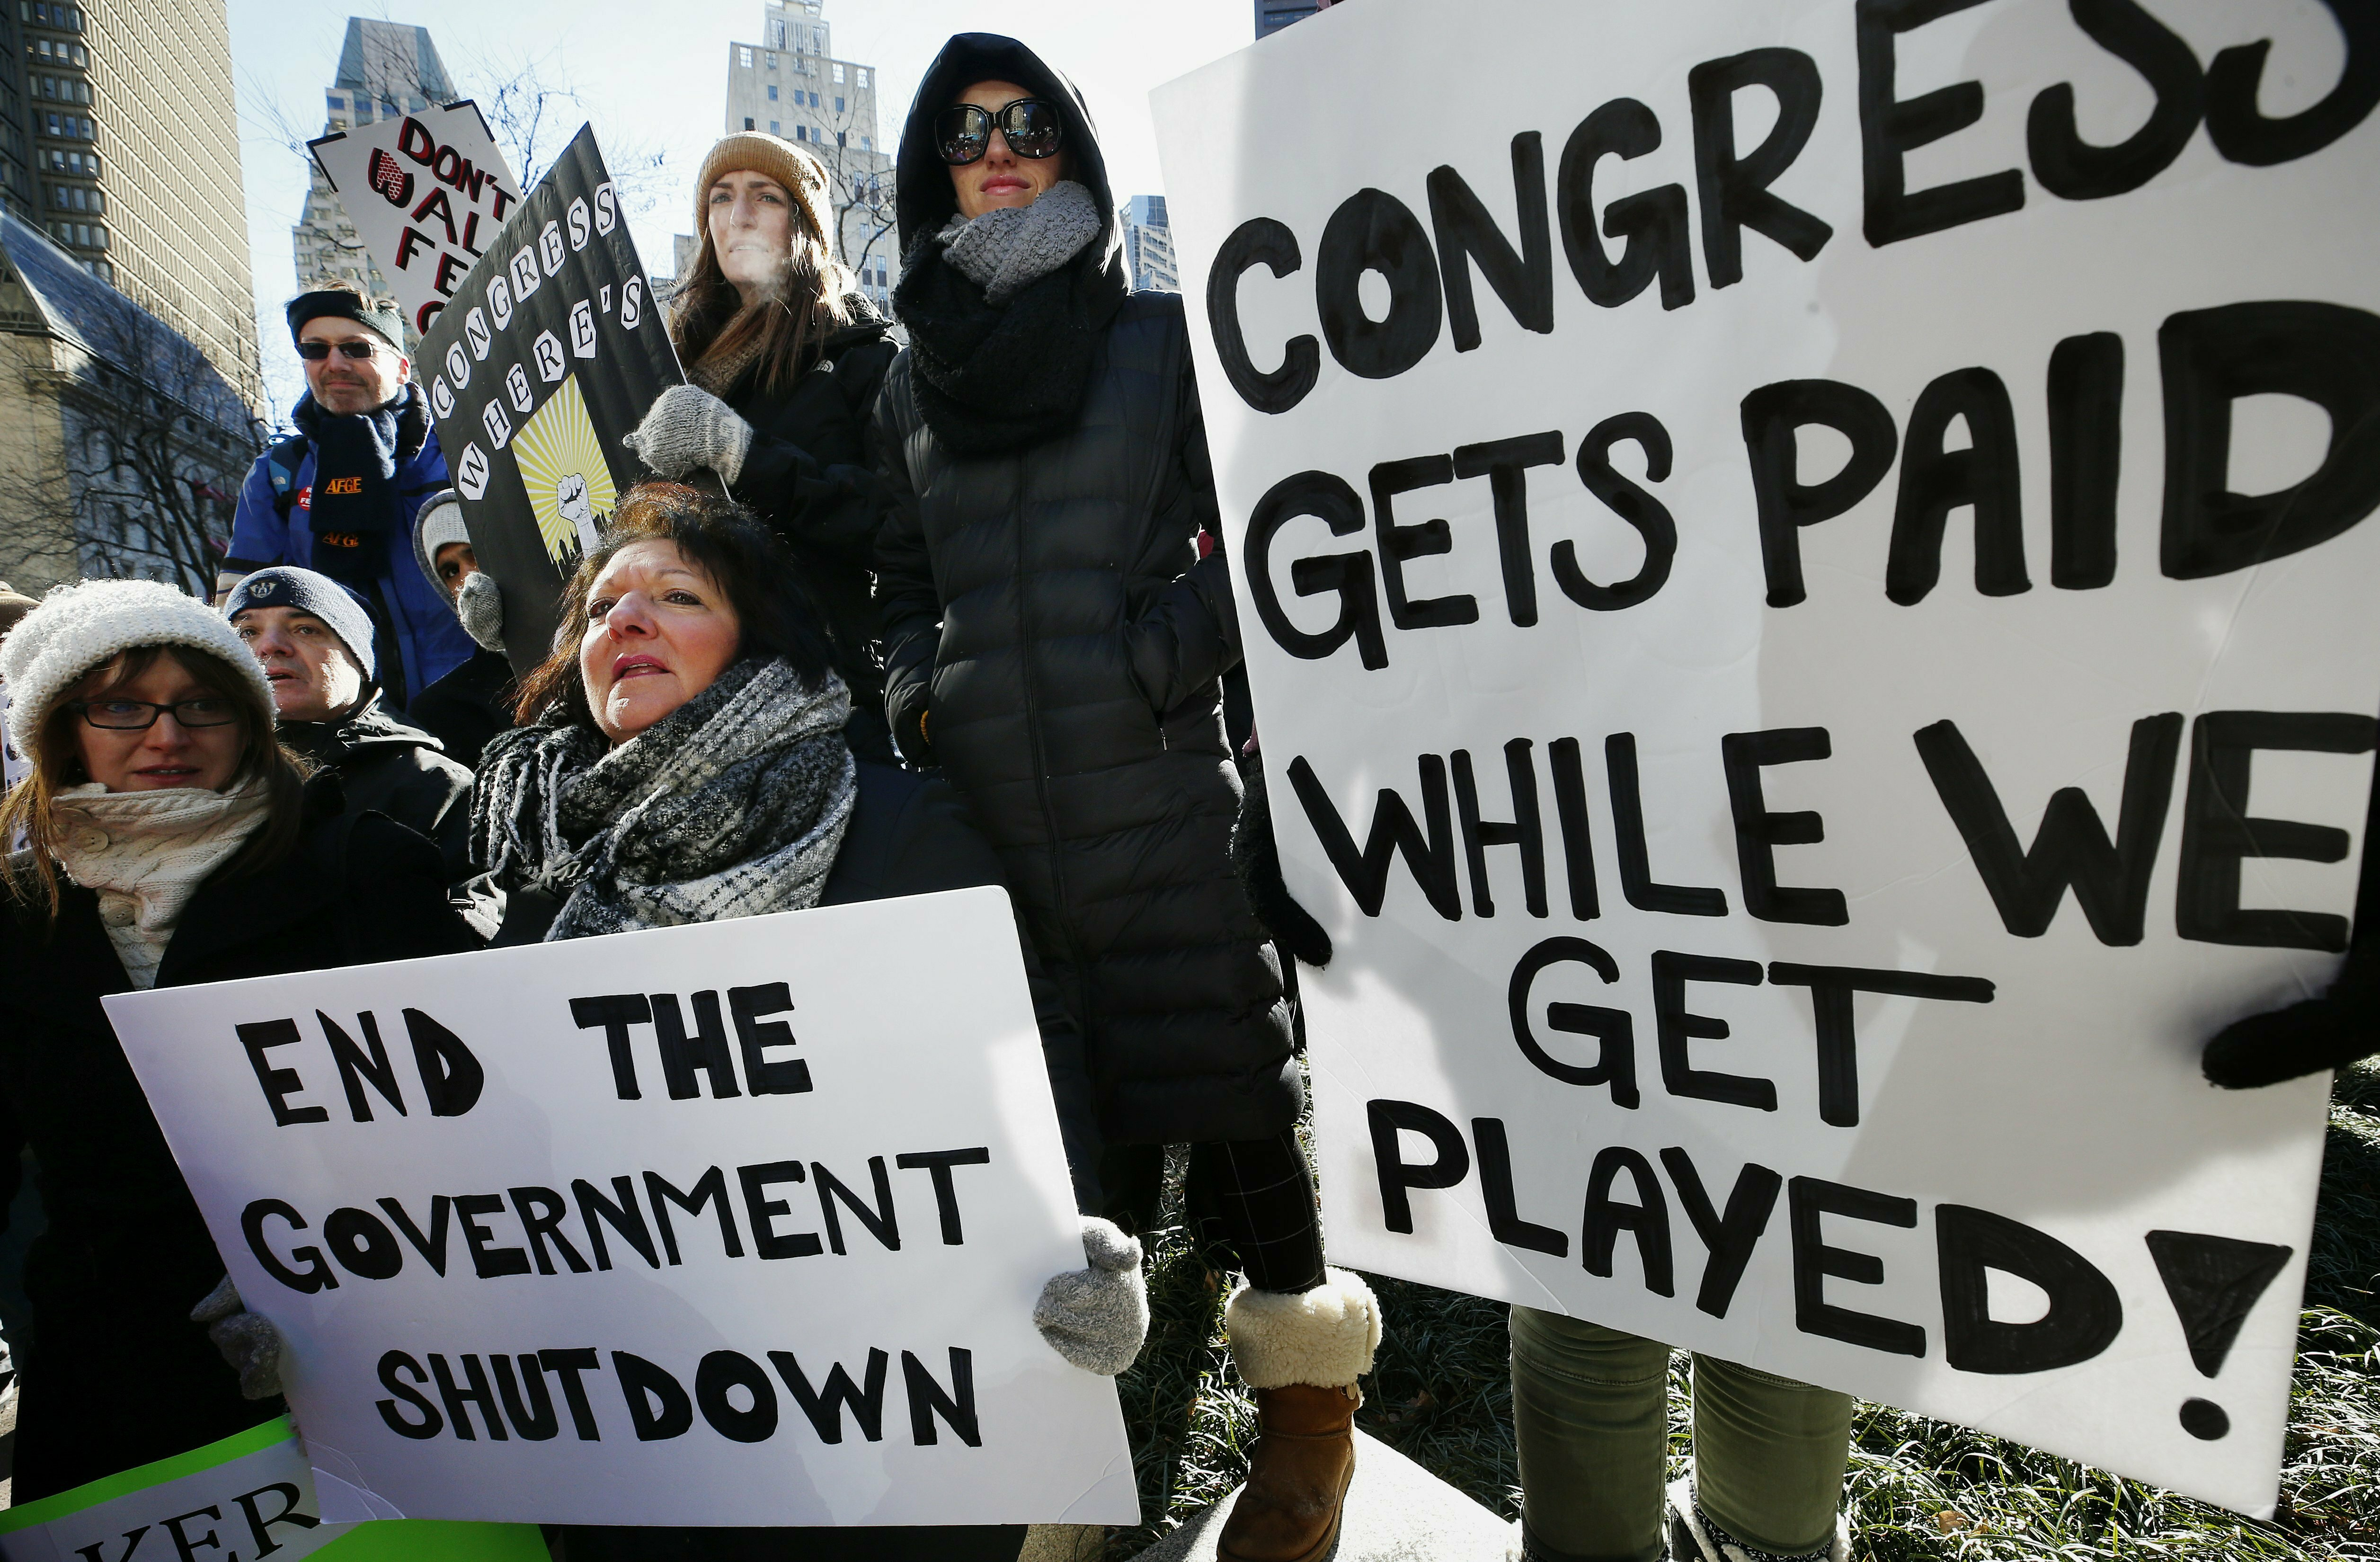 Government workers and their supporters hold signs during a protest in Boston on Jan.11, 2019. On Tuesday, national veterans groups implored lawmakers to find a solution to the ongoing budget impasse. (Michael Dwyer/AP)